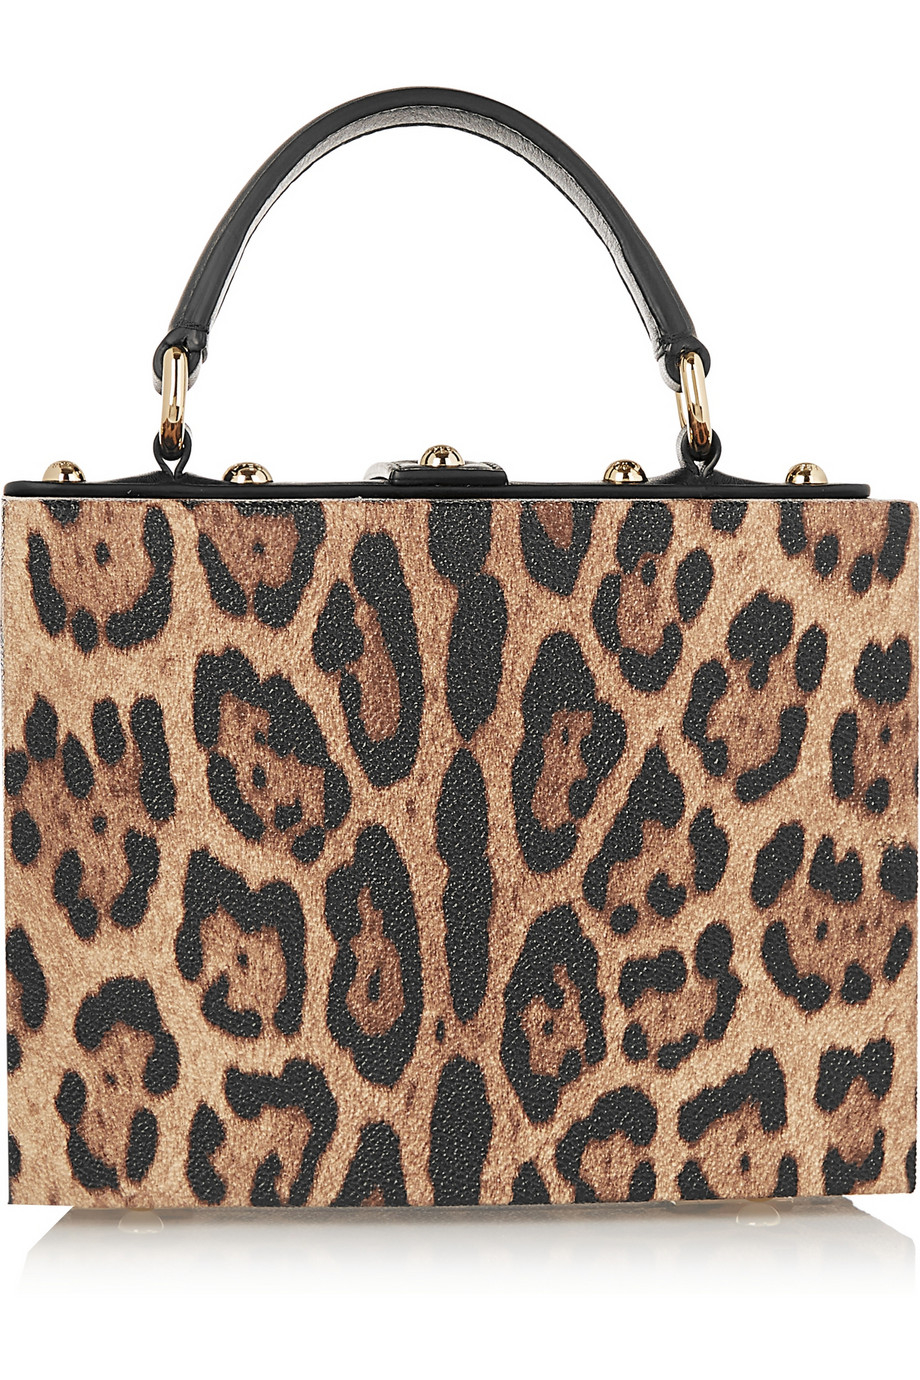 56b66c2f5bbb7 Dolce And Gabbana Giraffe Print Handbags - Handbag Photos ...